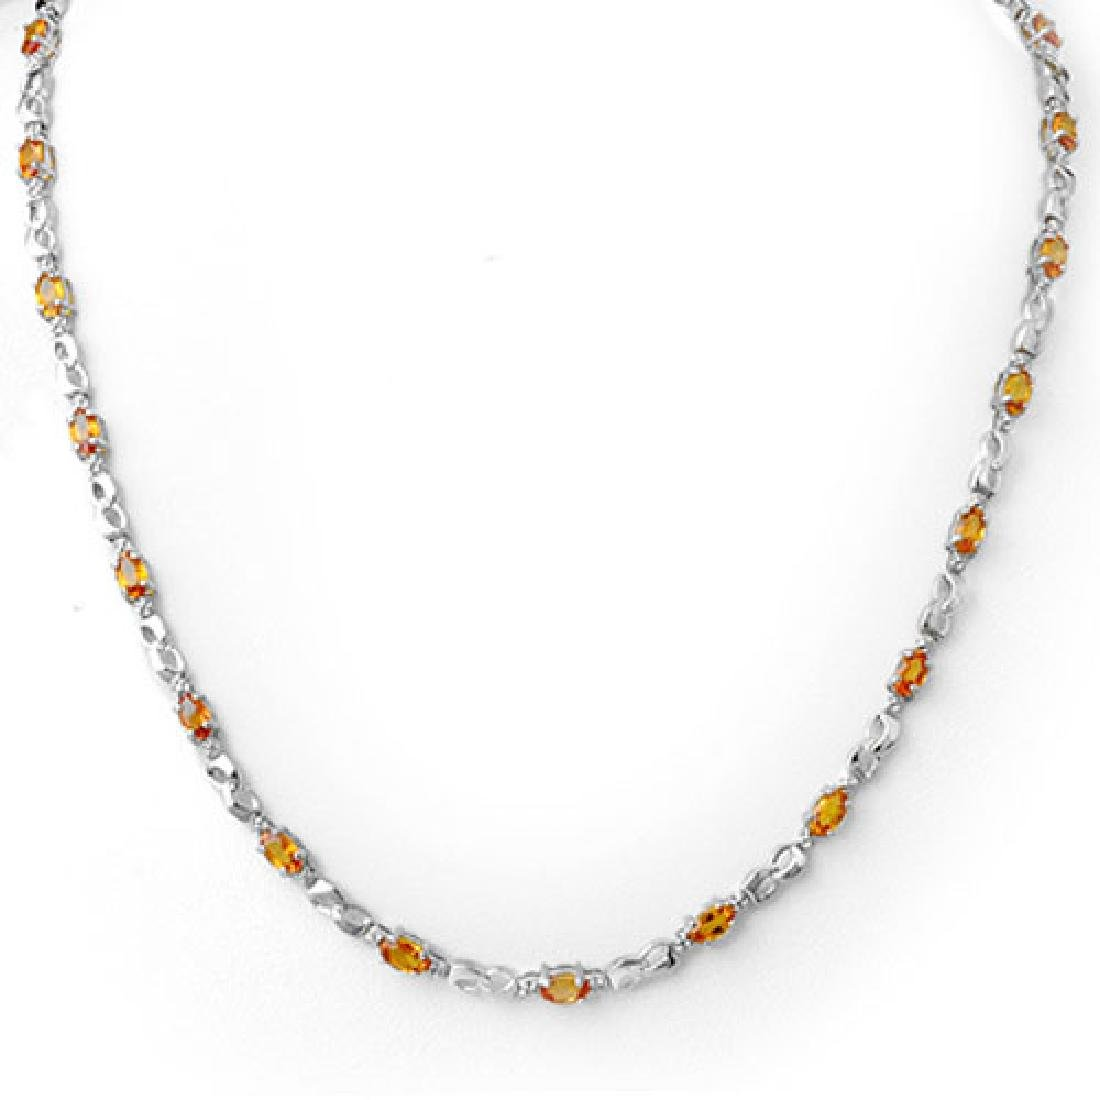 9.02 CTW Orange Sapphire & Diamond Necklace 18K White